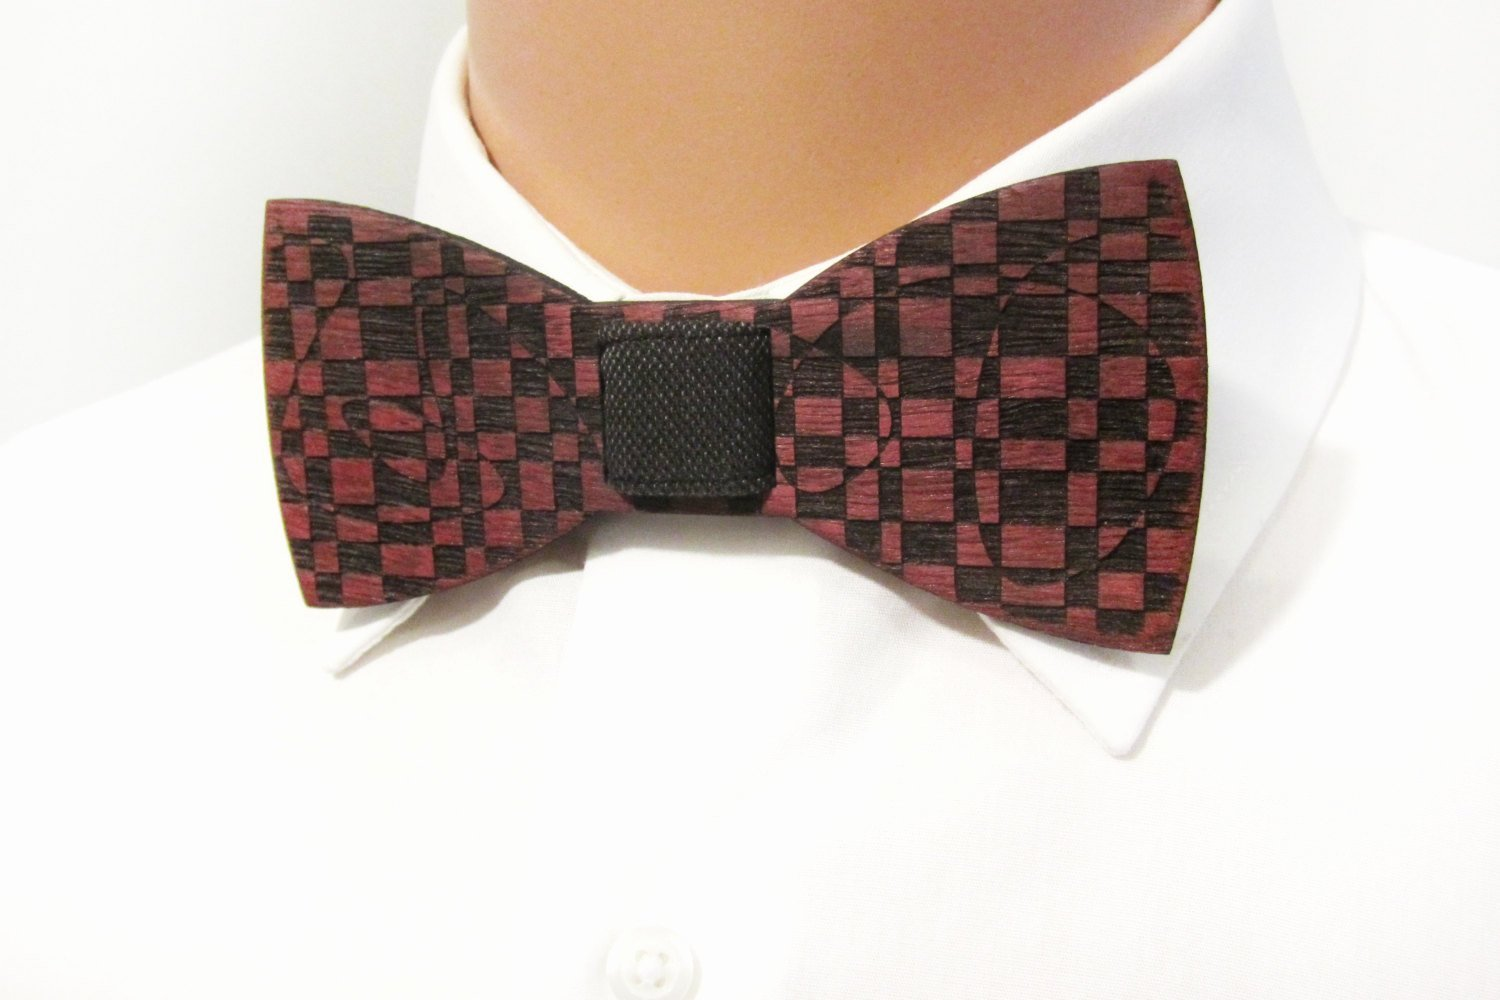 Wooden Bow Tie Template Elegant Wooden Bow Tie Checkers Purple Heart Wood Self Tie Bow